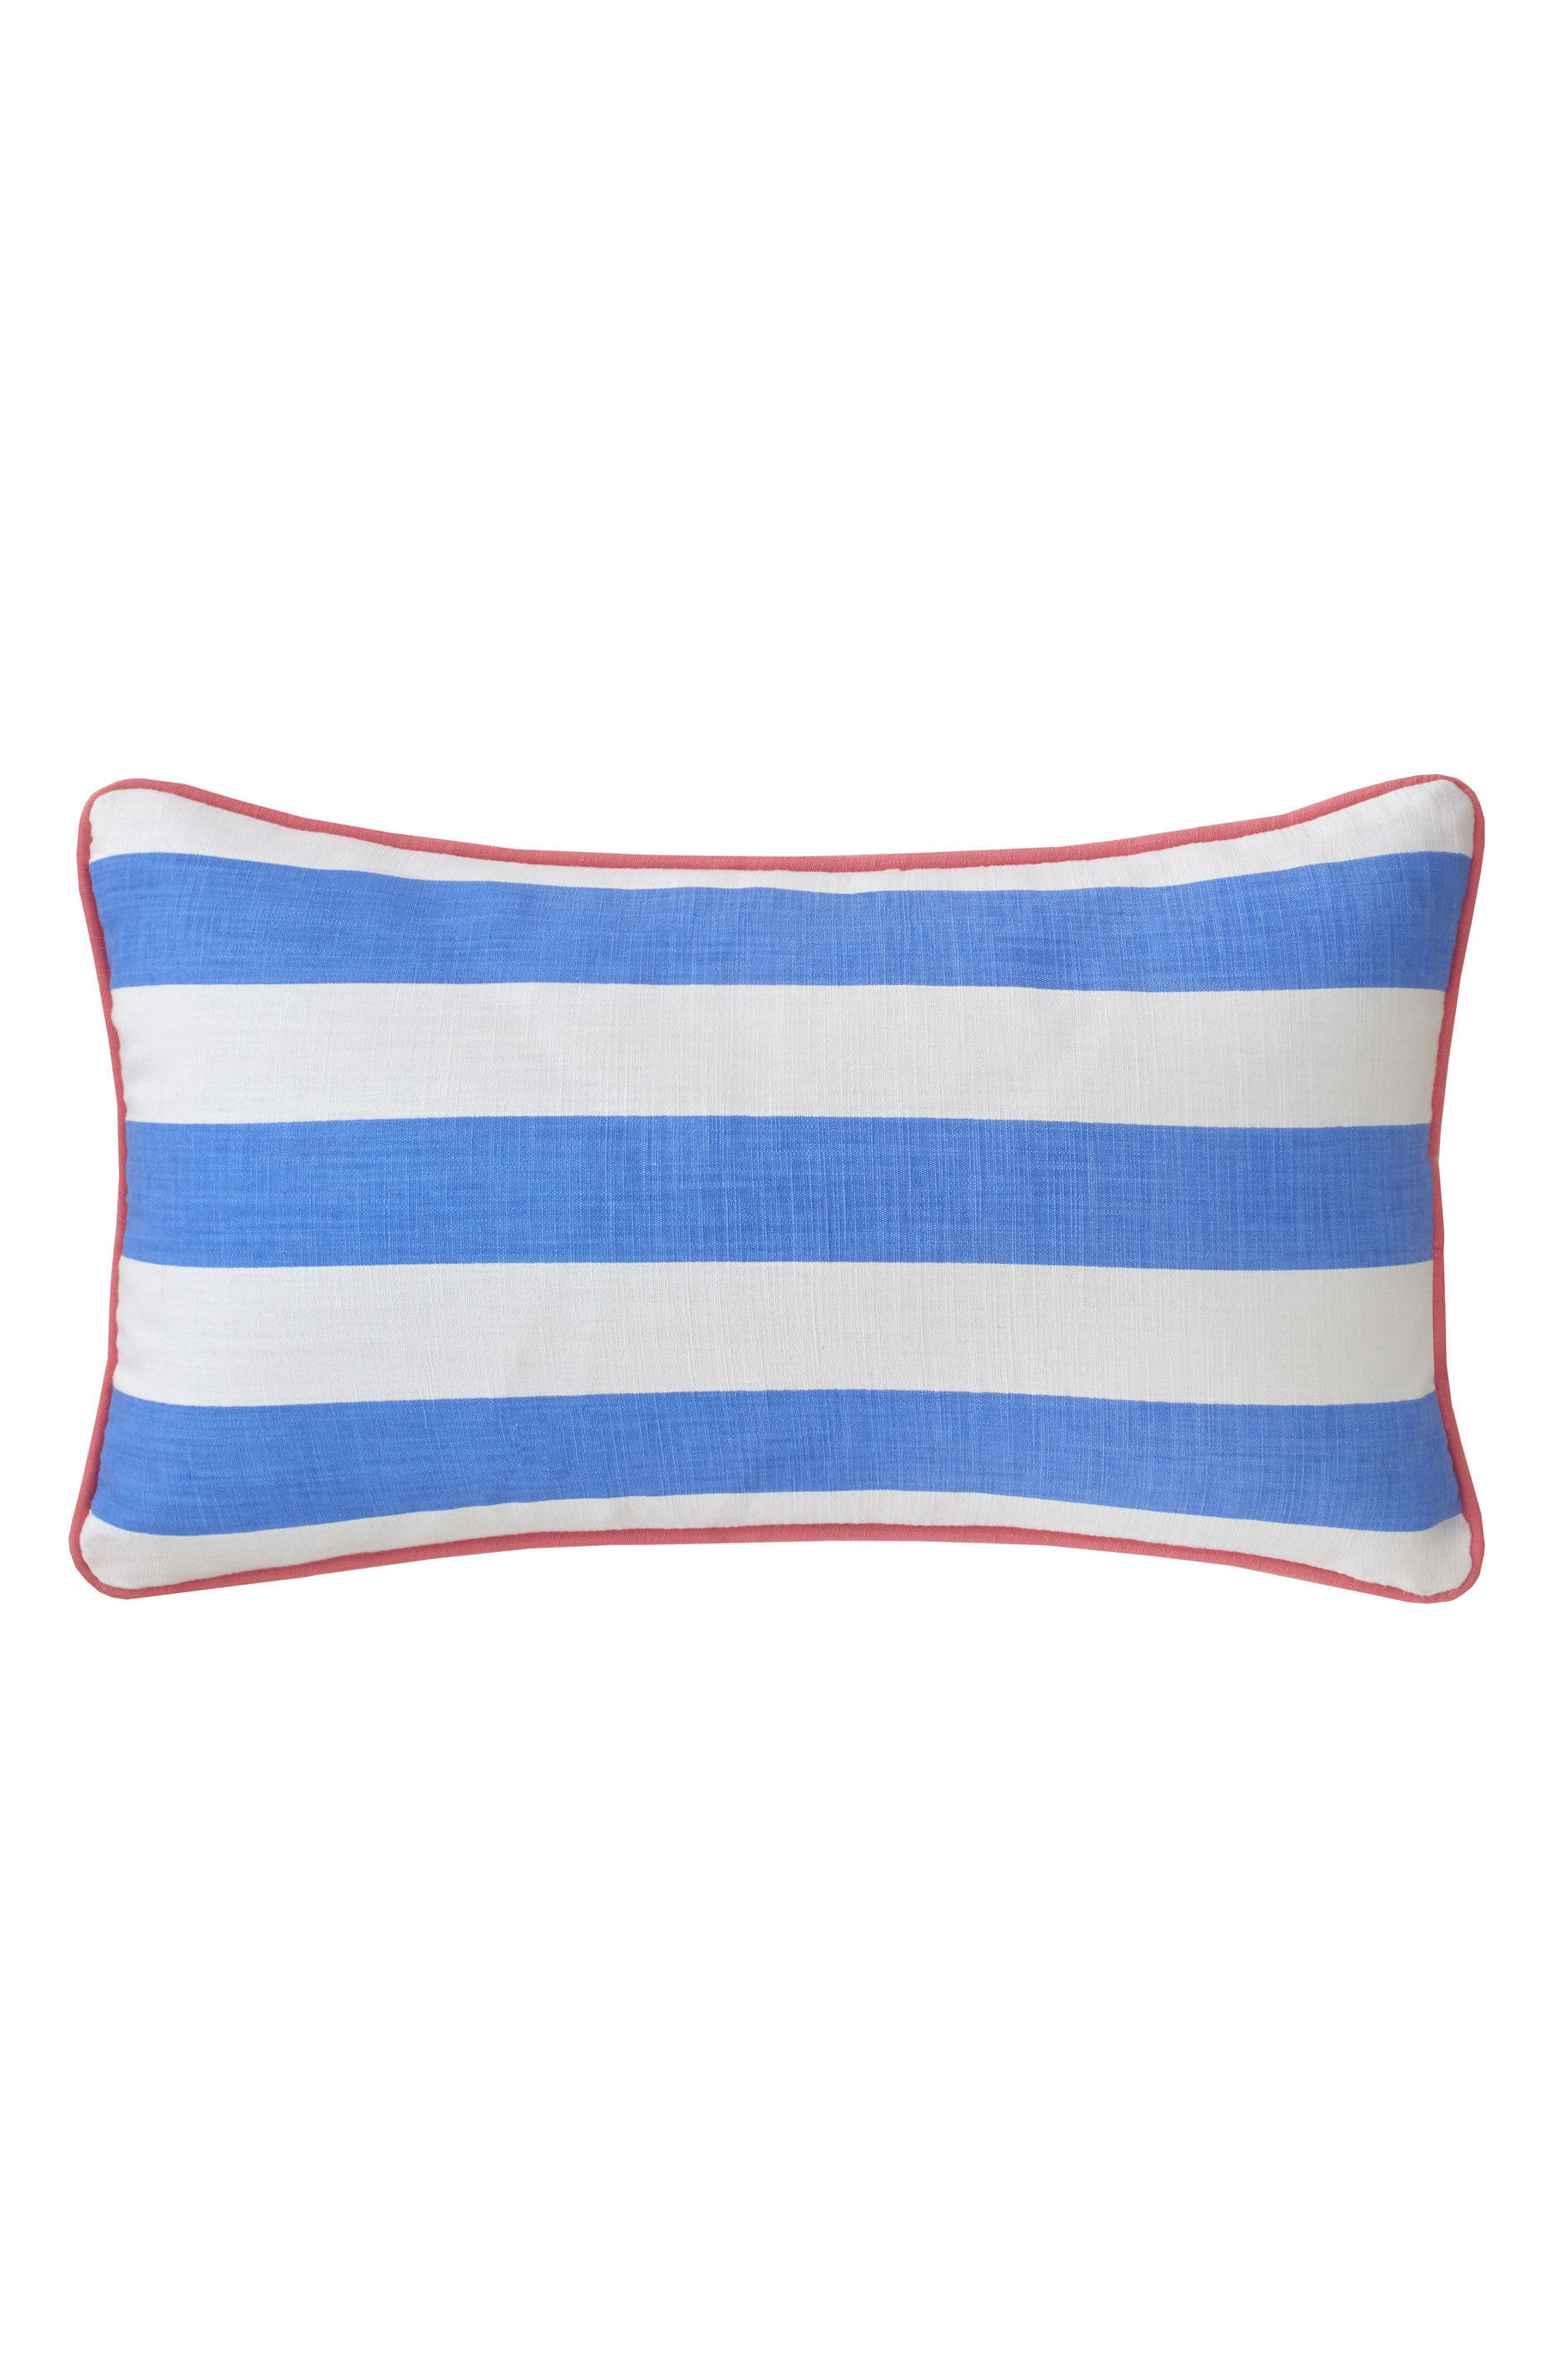 SOUTHERN TIDE,                             Coastal Ikat Stripe Accent Pillow,                             Main thumbnail 1, color,                             400